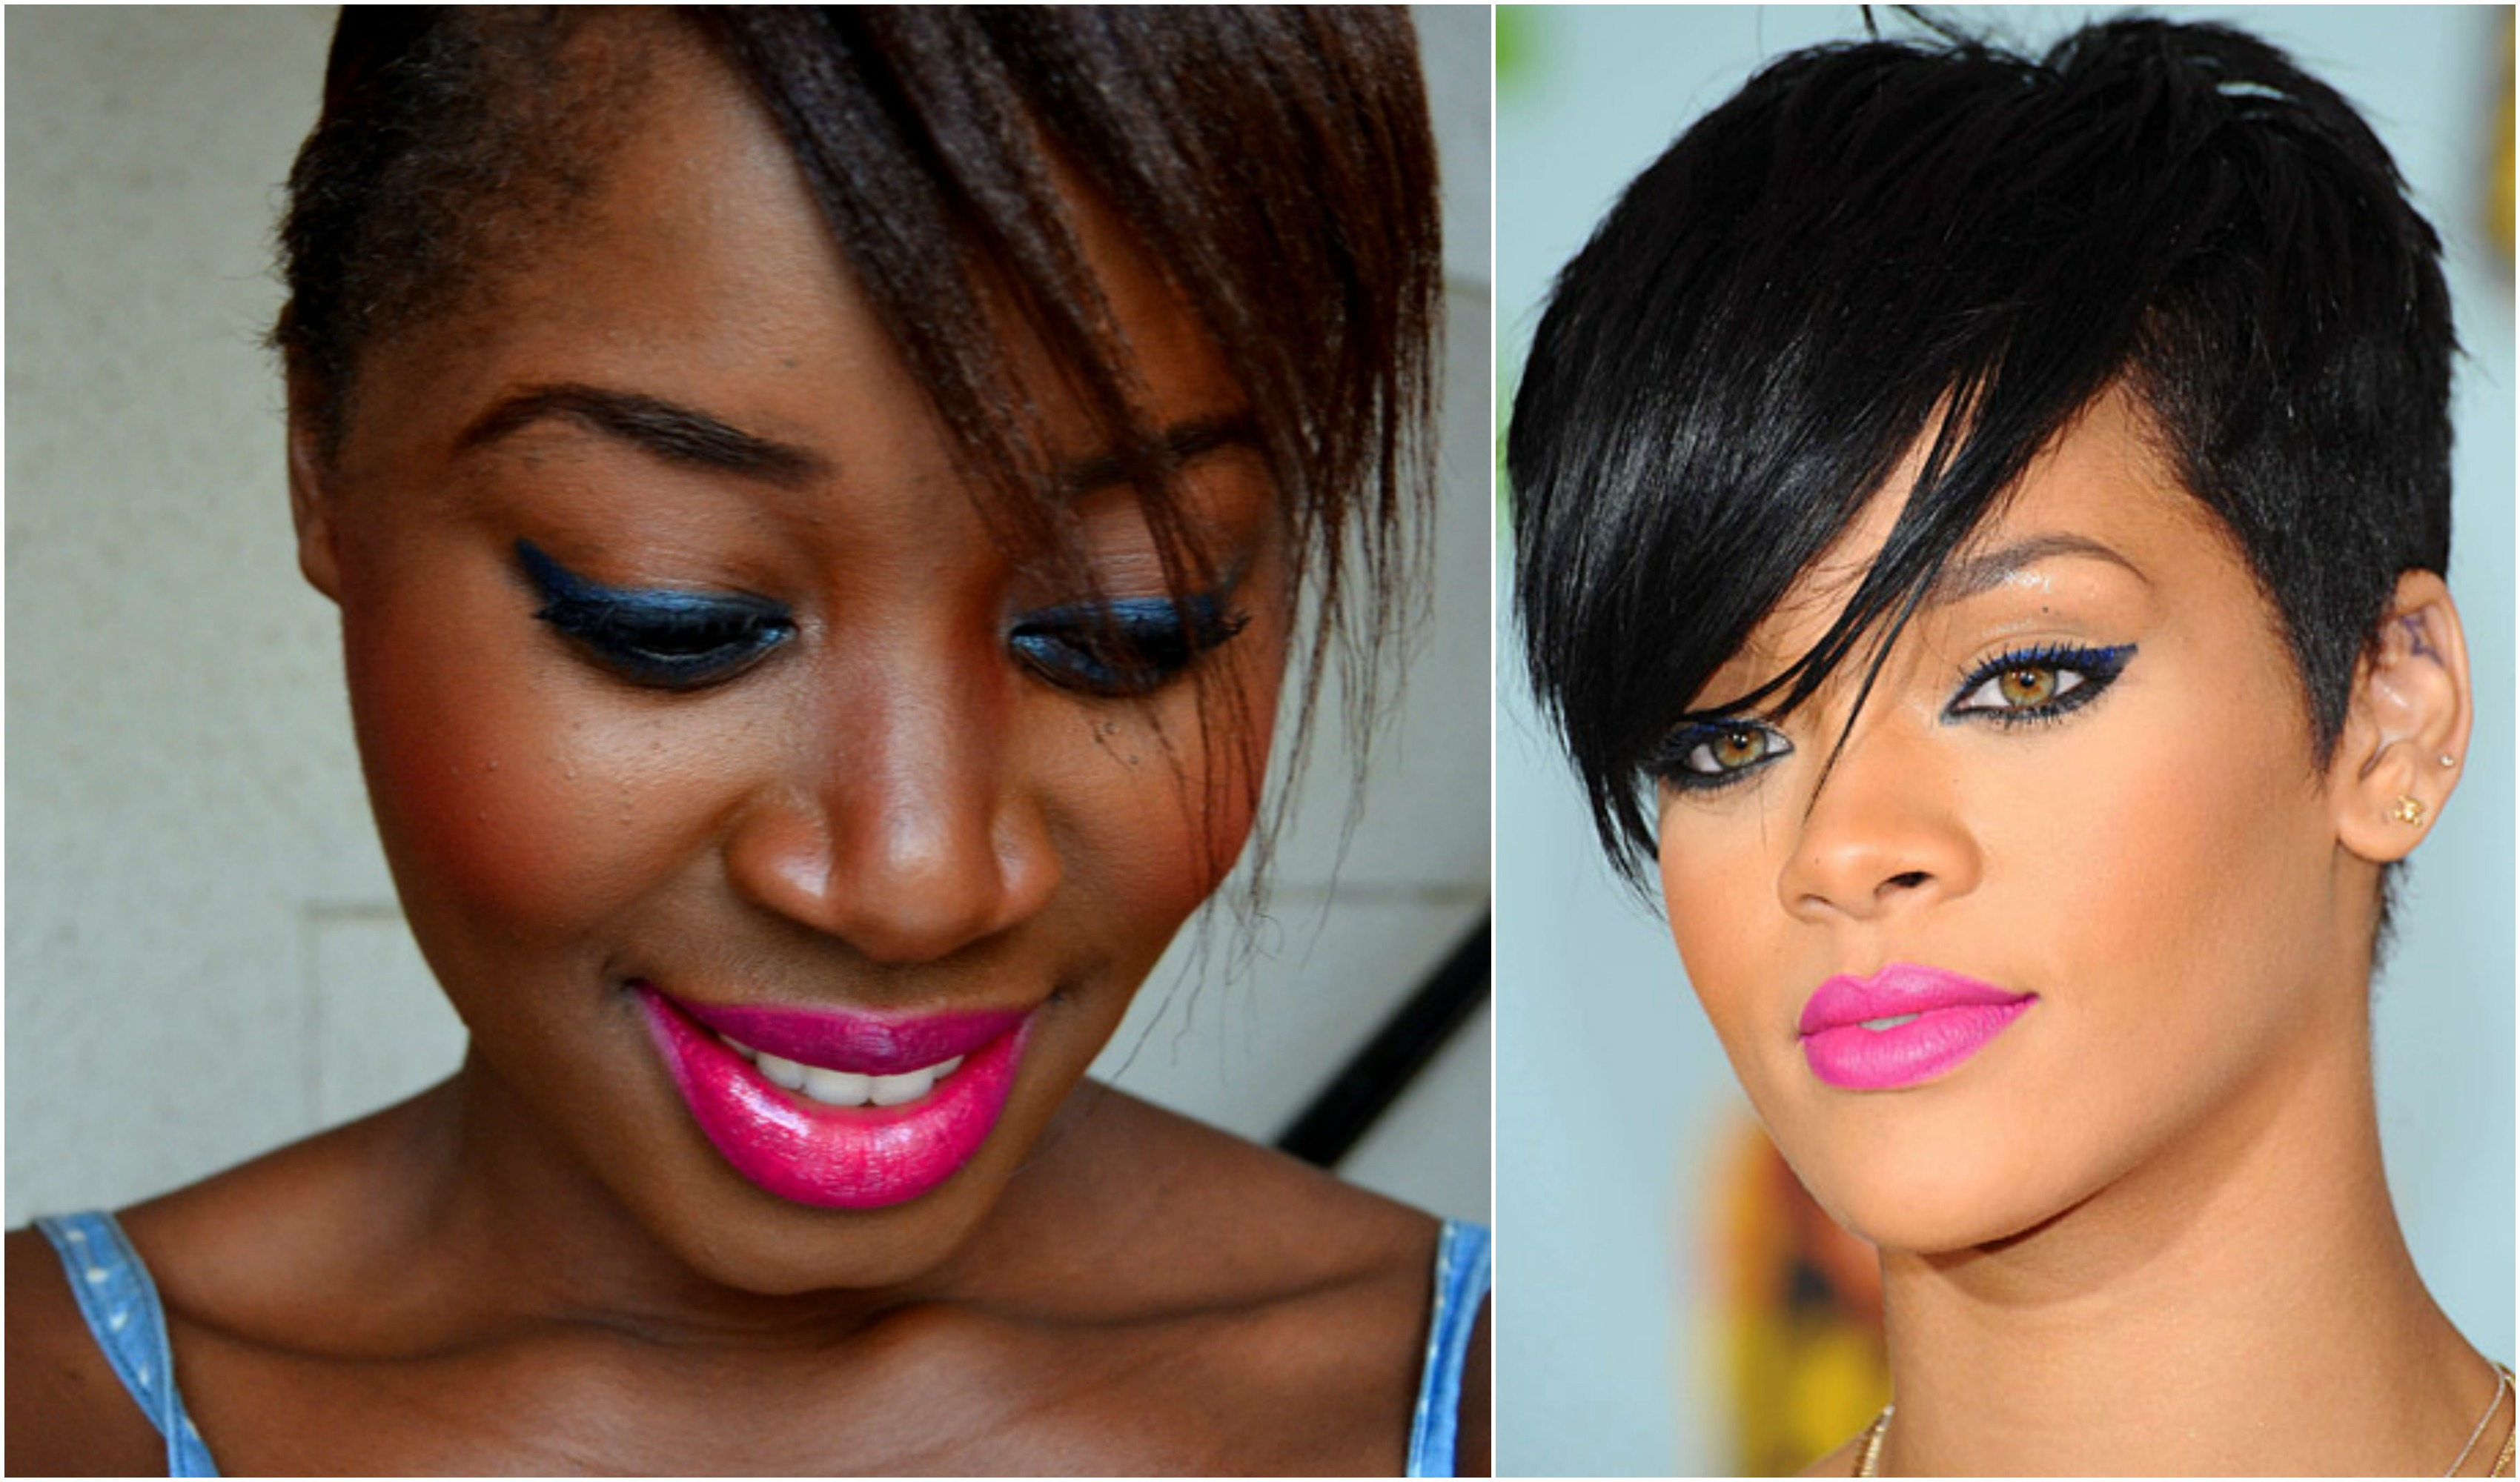 RIHANNA INSPIRED  MAKEUP AND HOW  IT TRANSLATES ON DARKER SKIN TONES